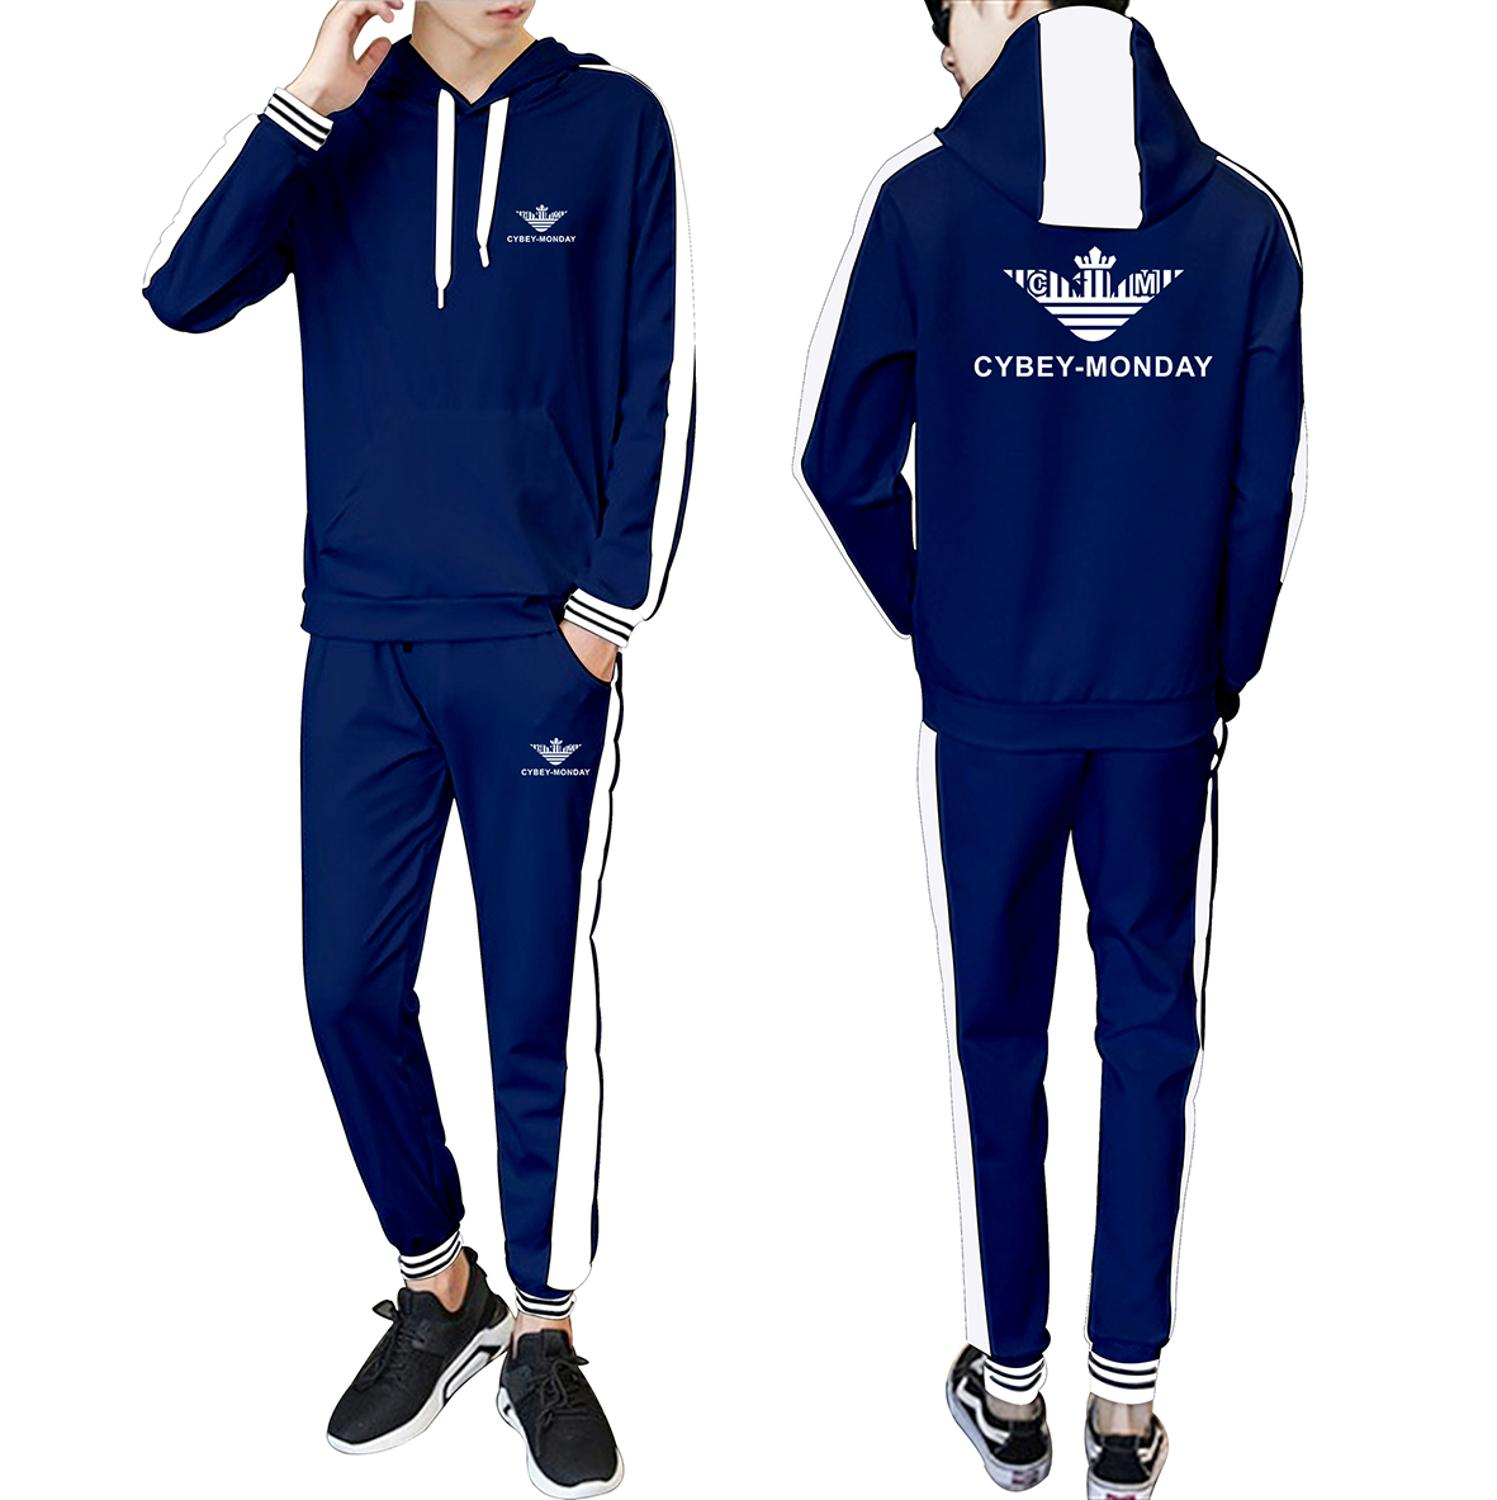 Sports New Logo 2020 Spring and Autumn New Hooded Stitching Fashion Casual Suit Fashion Men's and Women's Sports Casual Suit 3